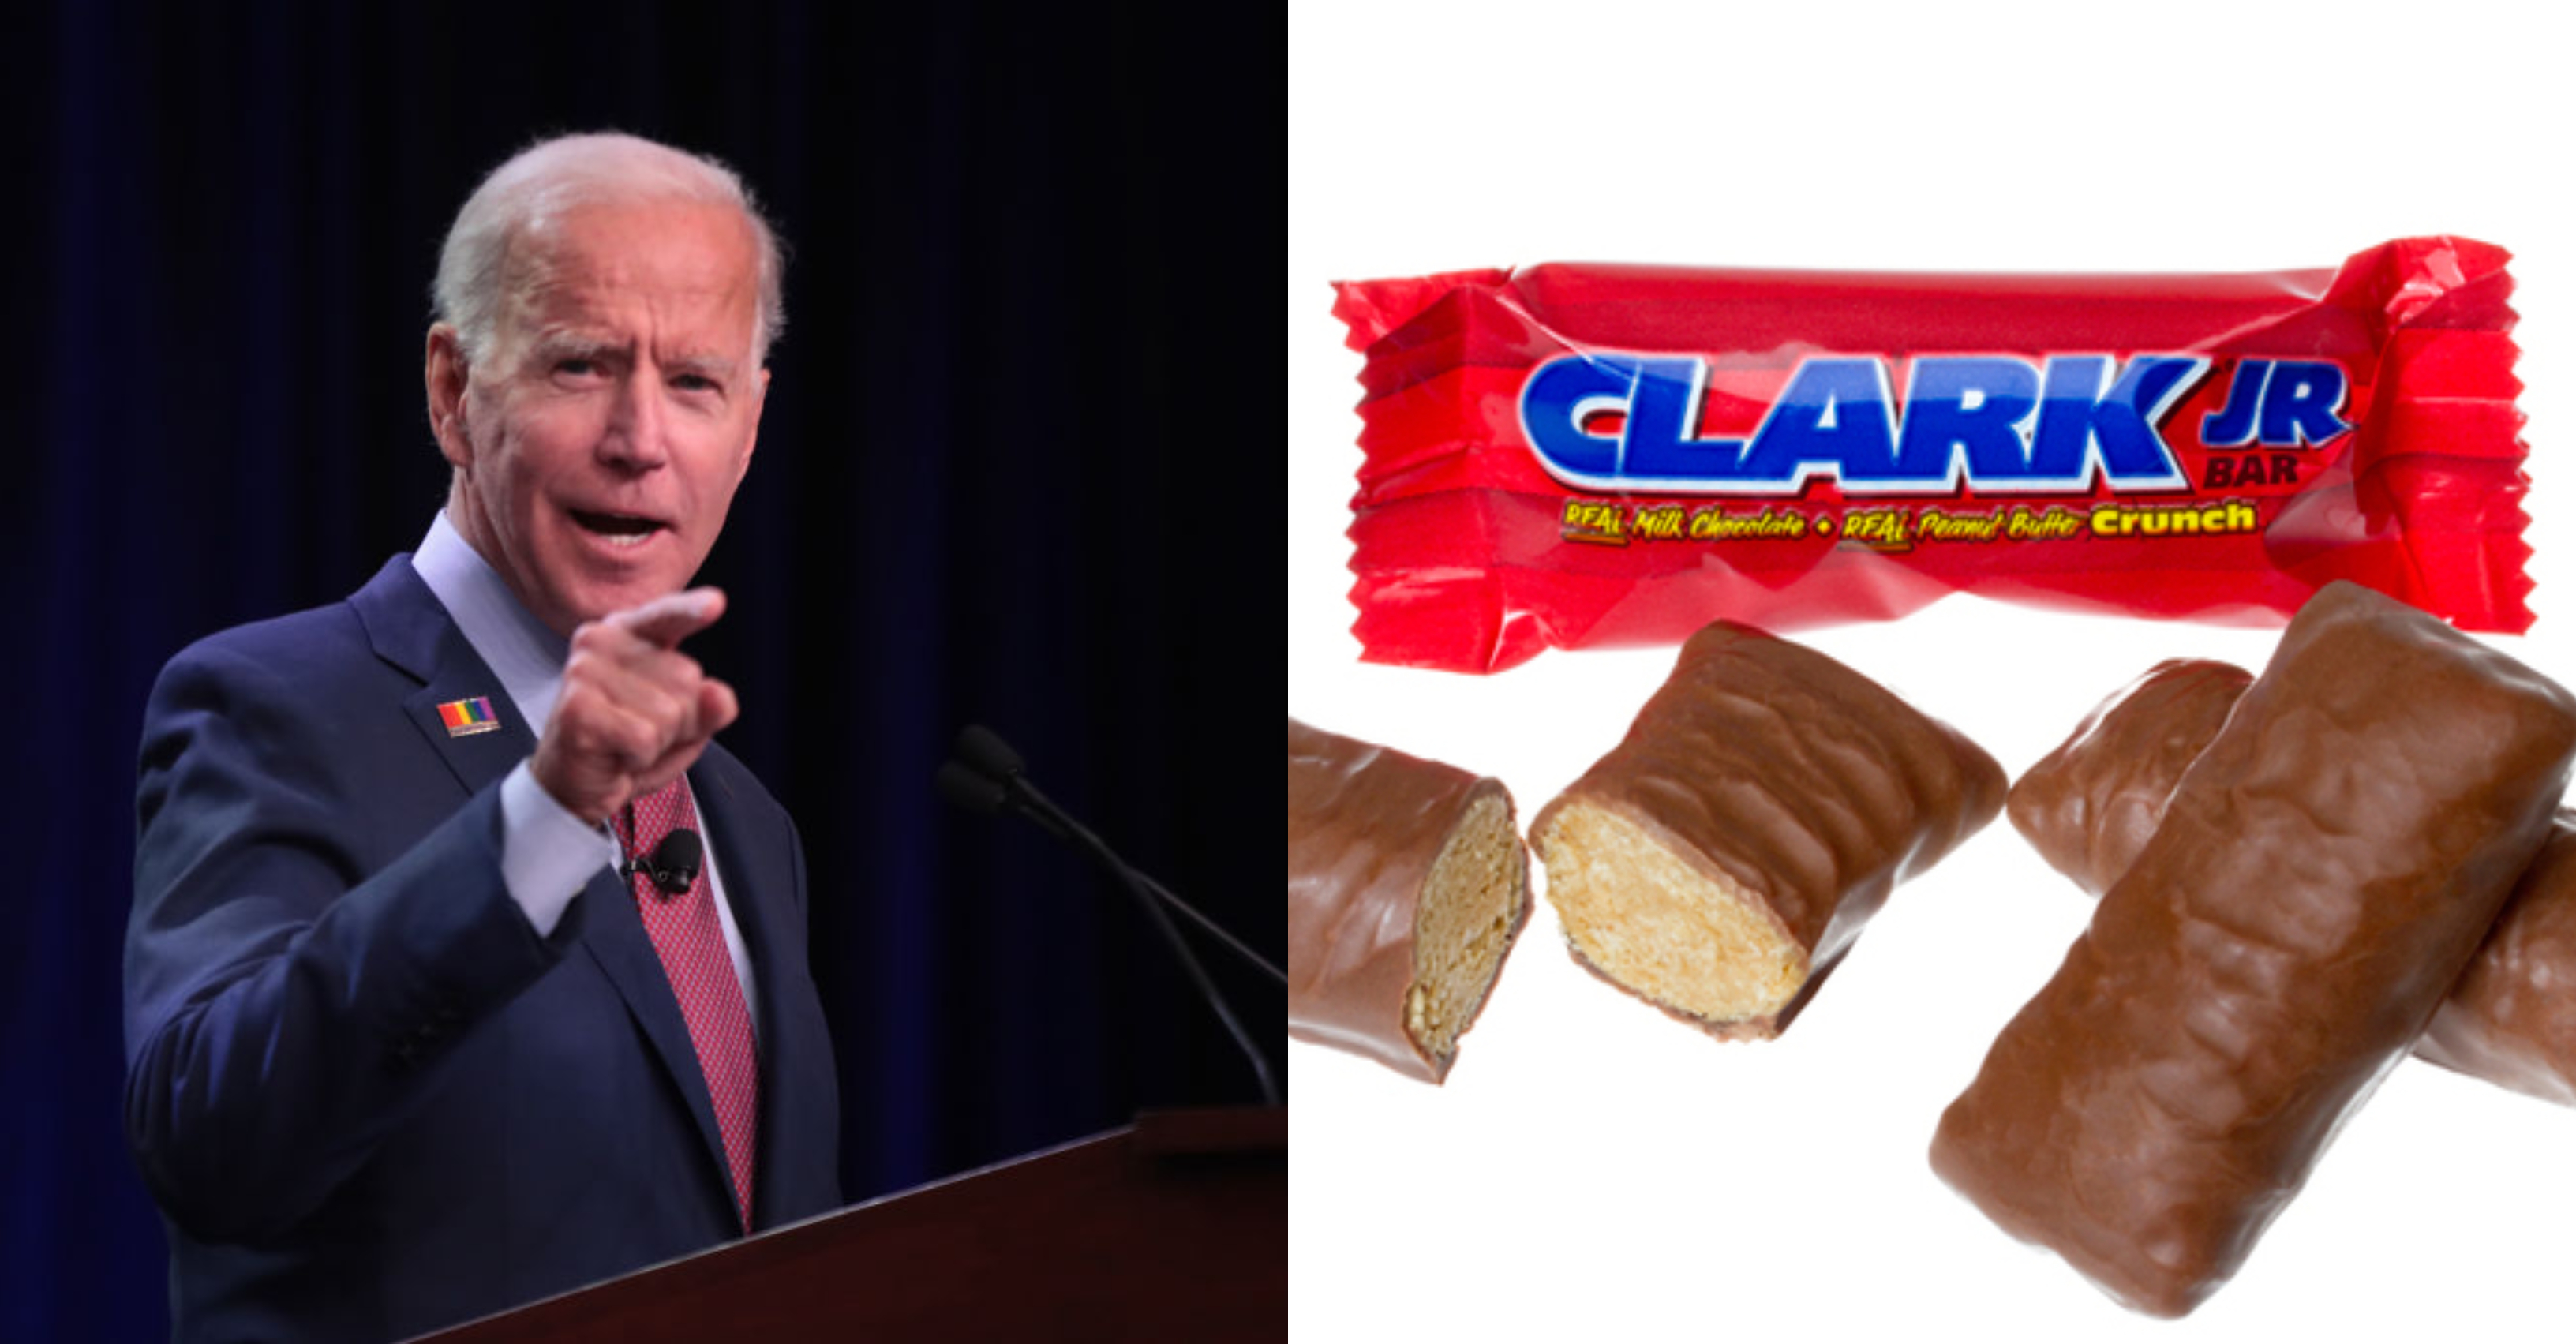 Joe Biden – Clark Bar